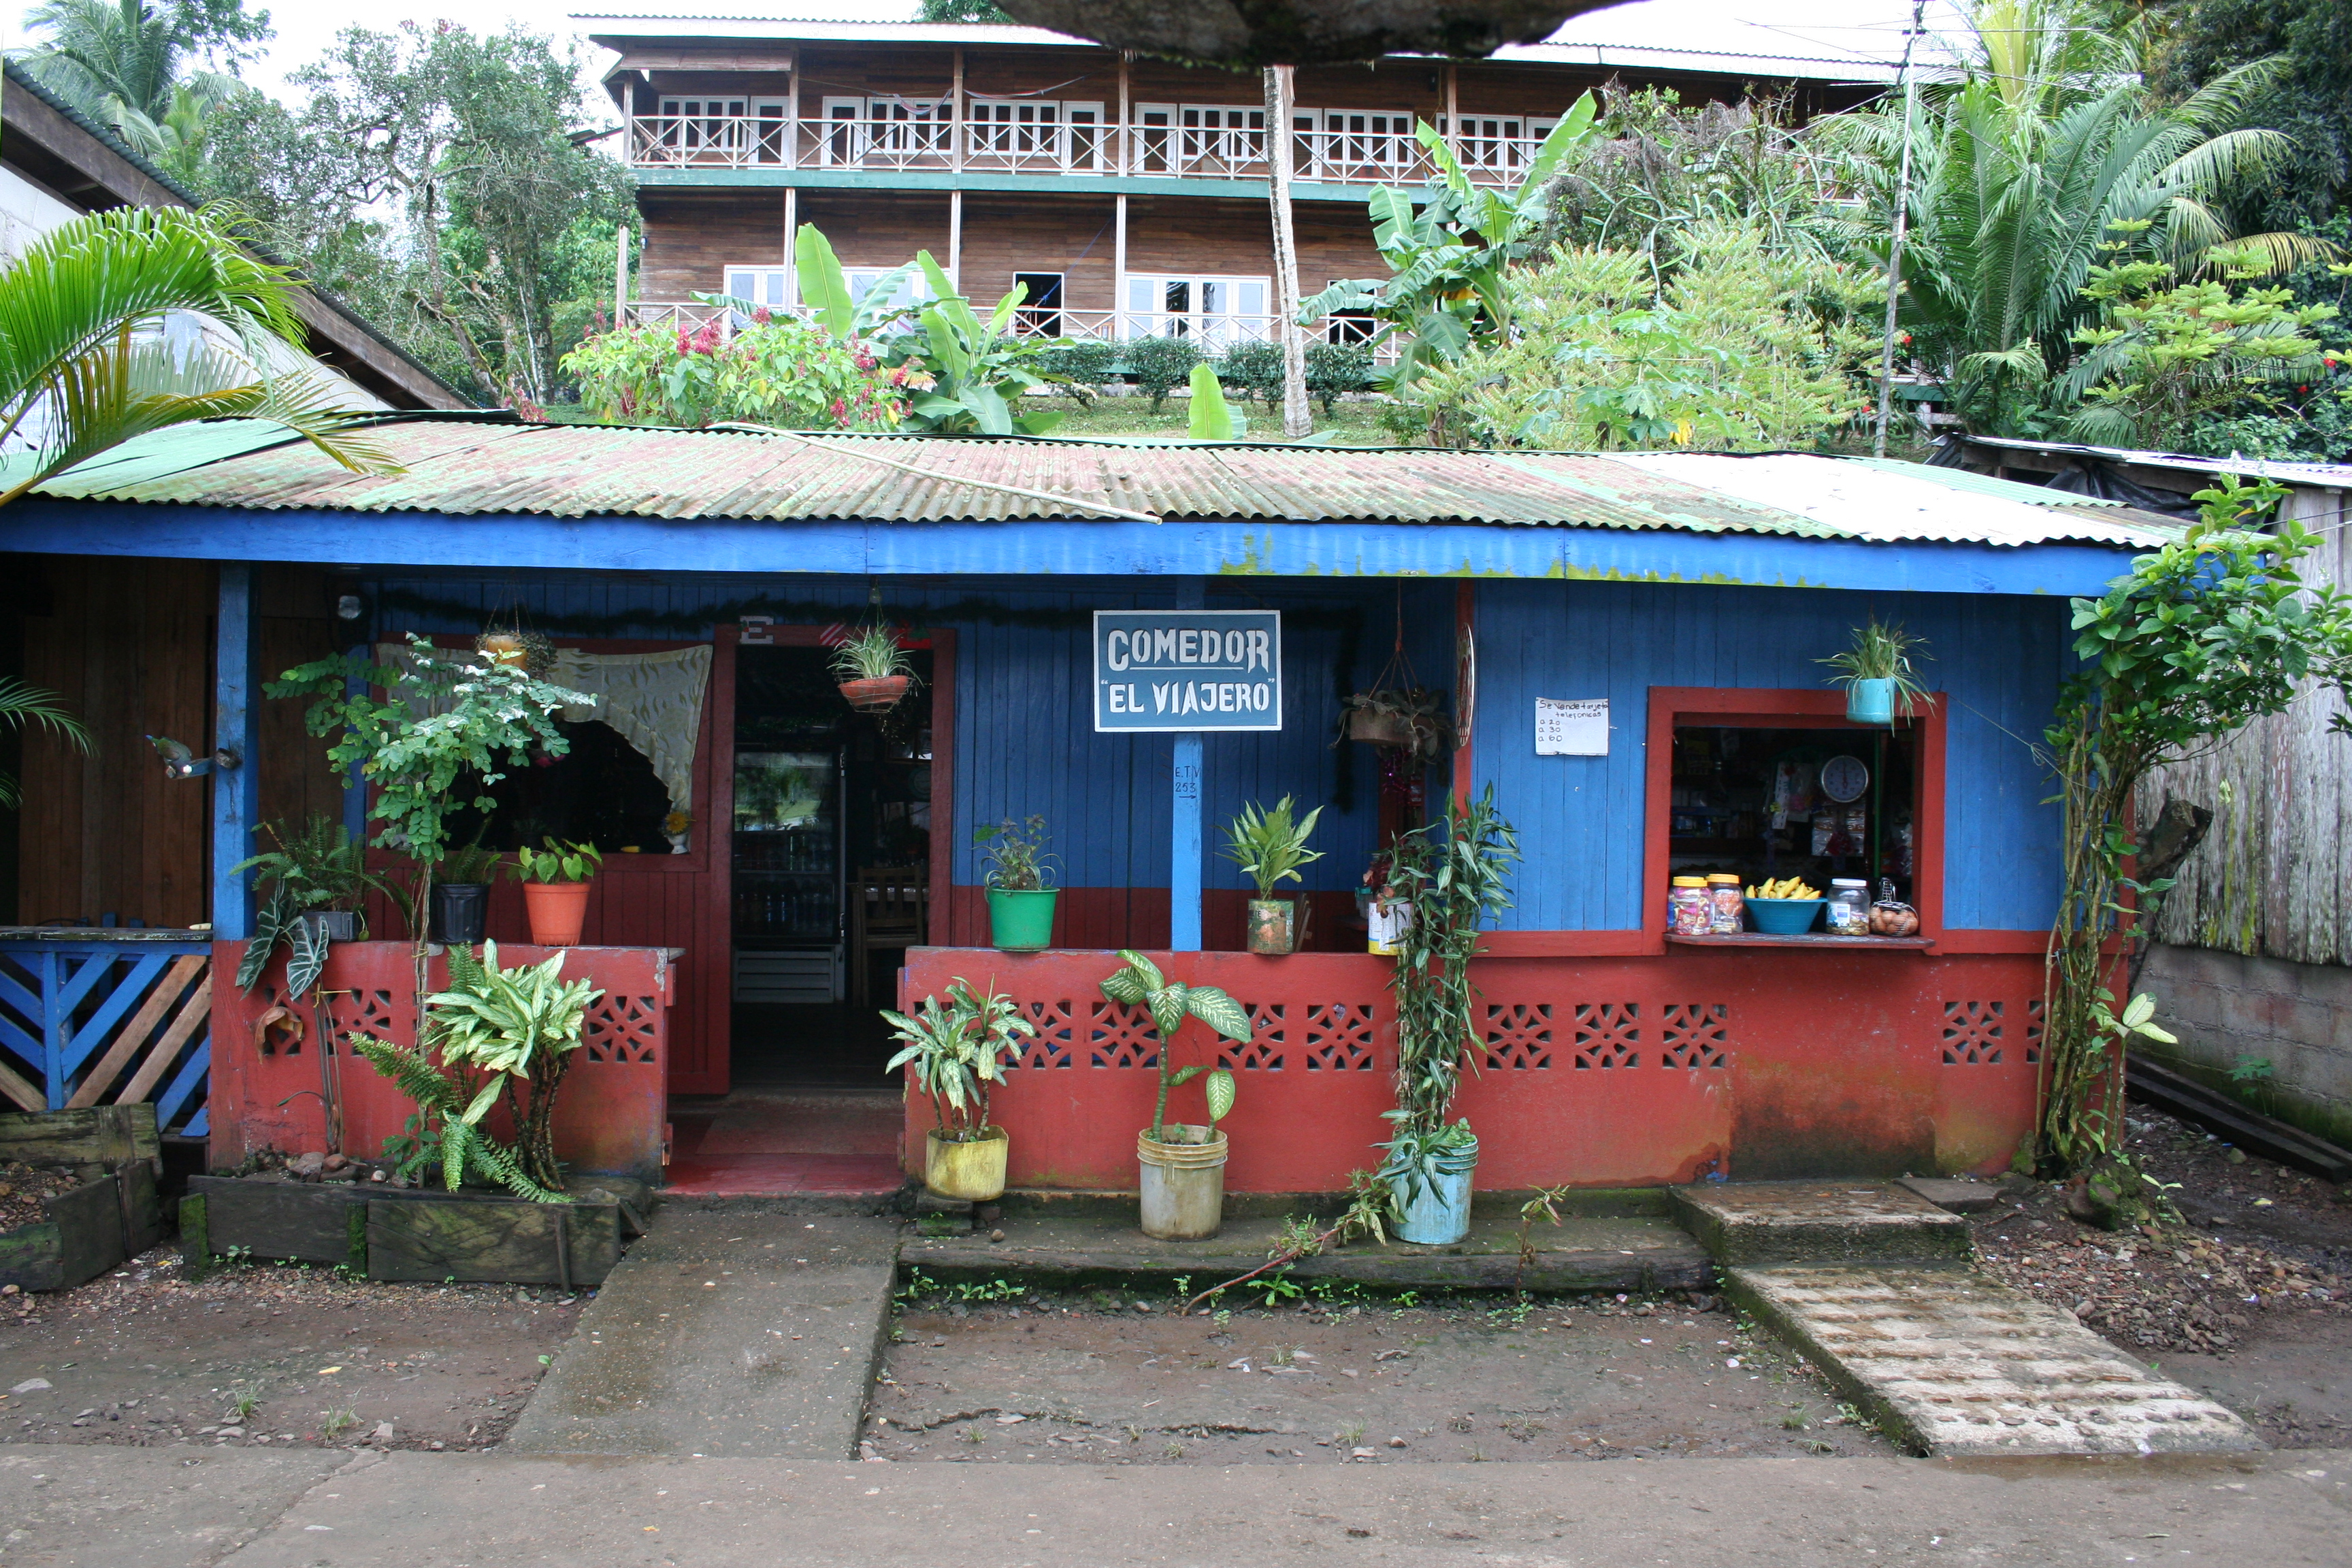 Colorful building in Nicaragua